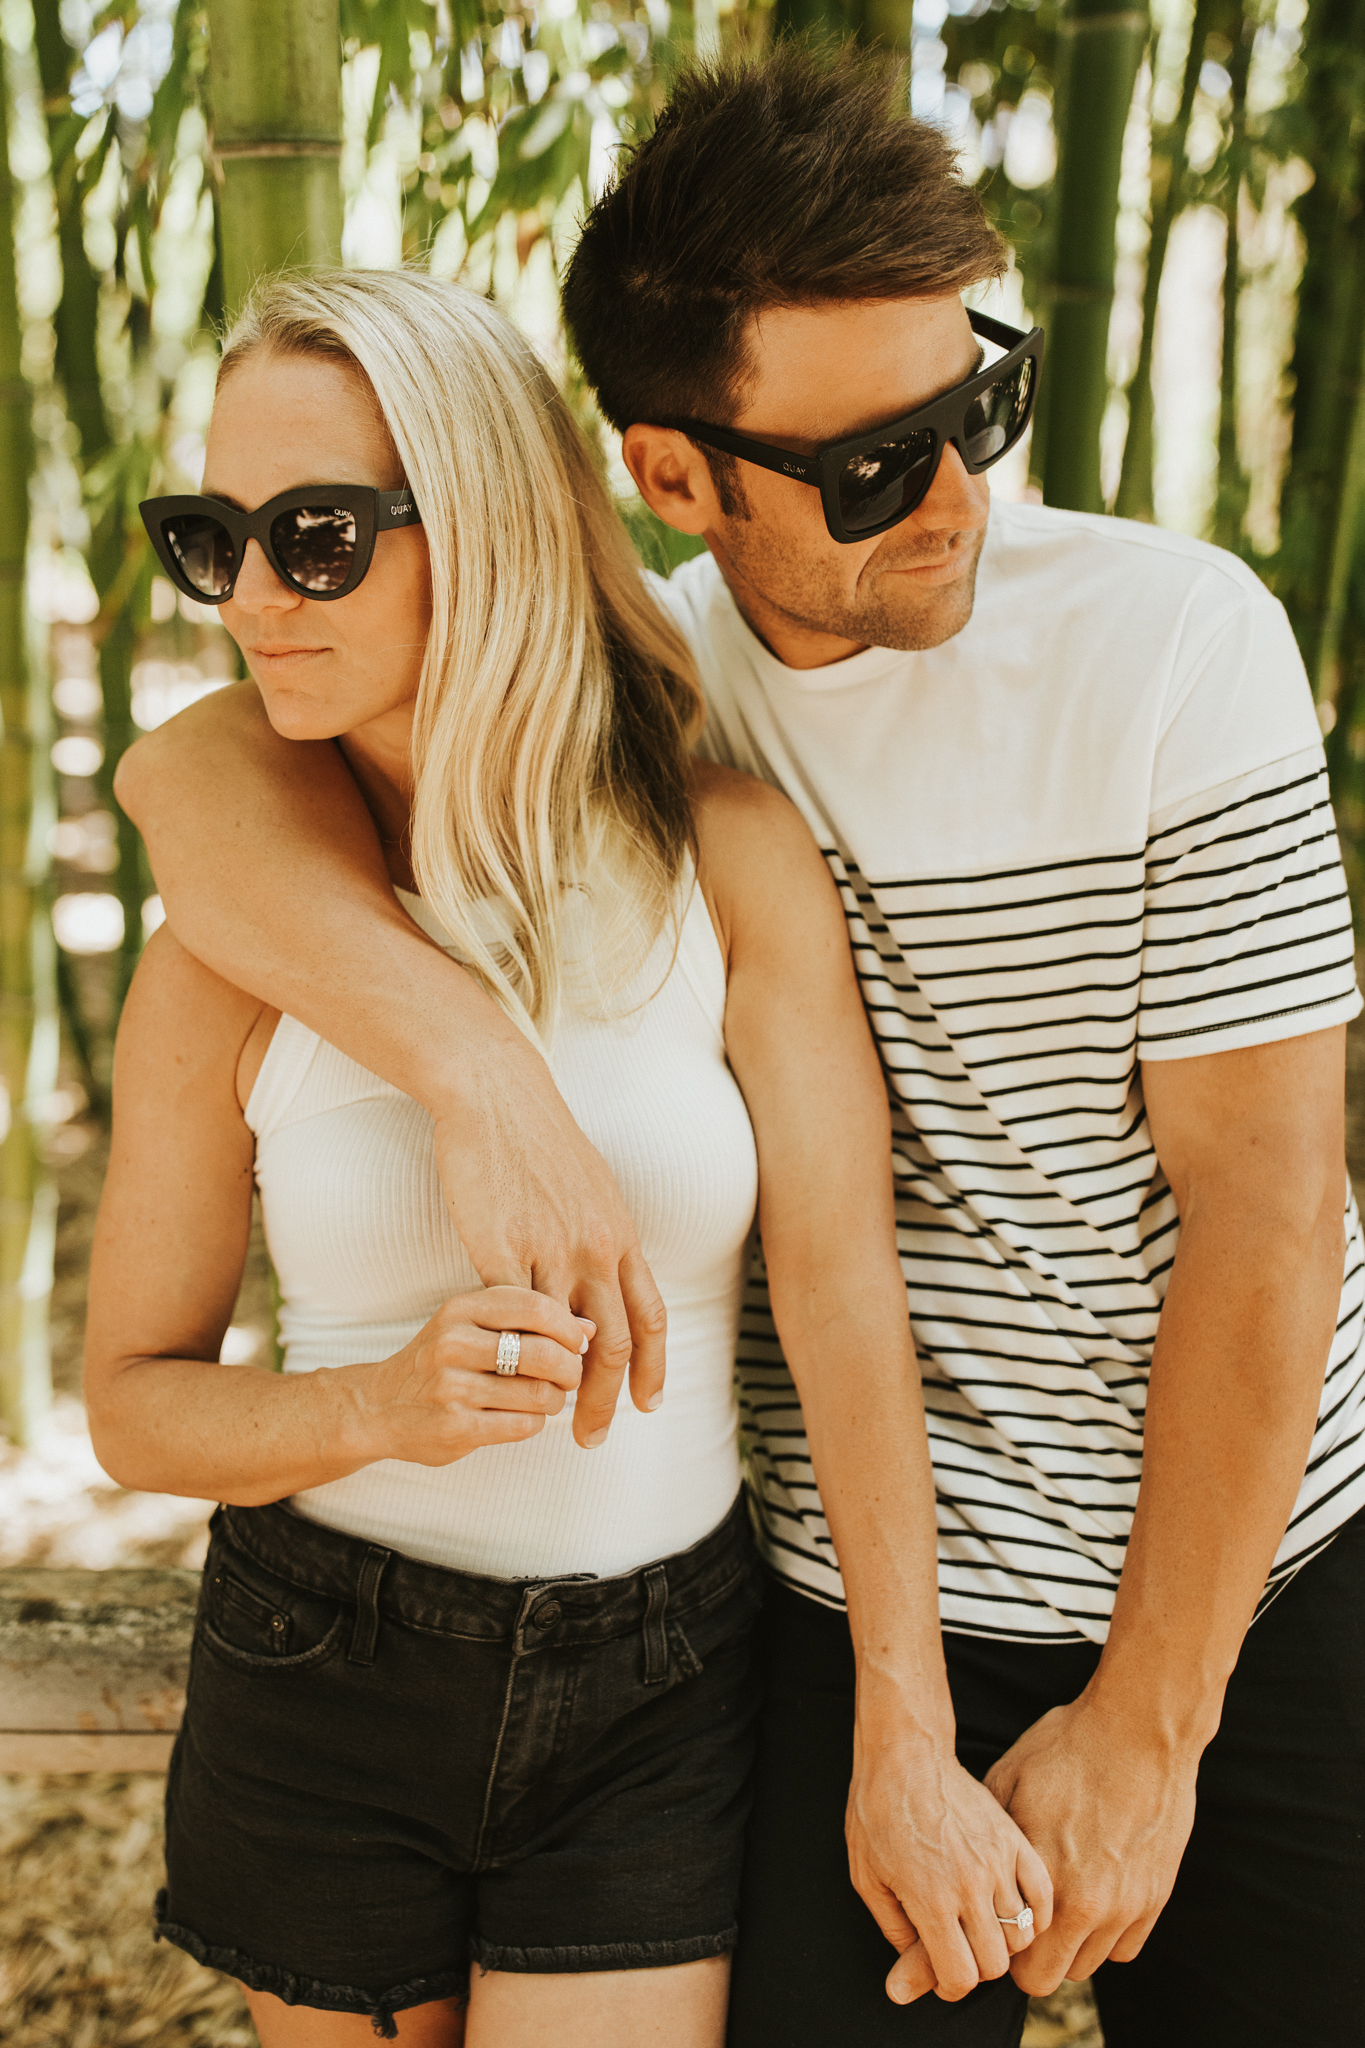 Topher.Katie.Couplessession-91.jpg